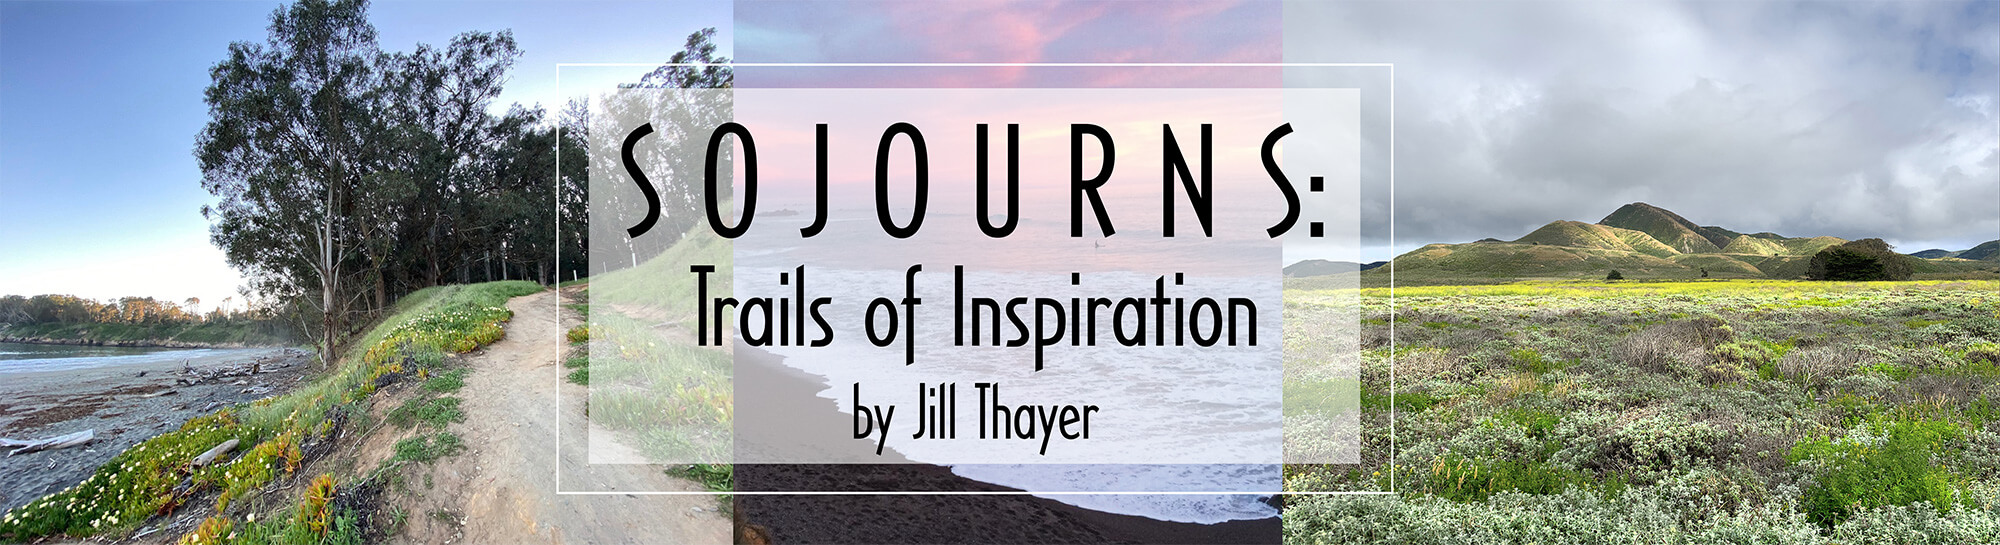 Sojourns Trails of Inspiration by Jill Thayer